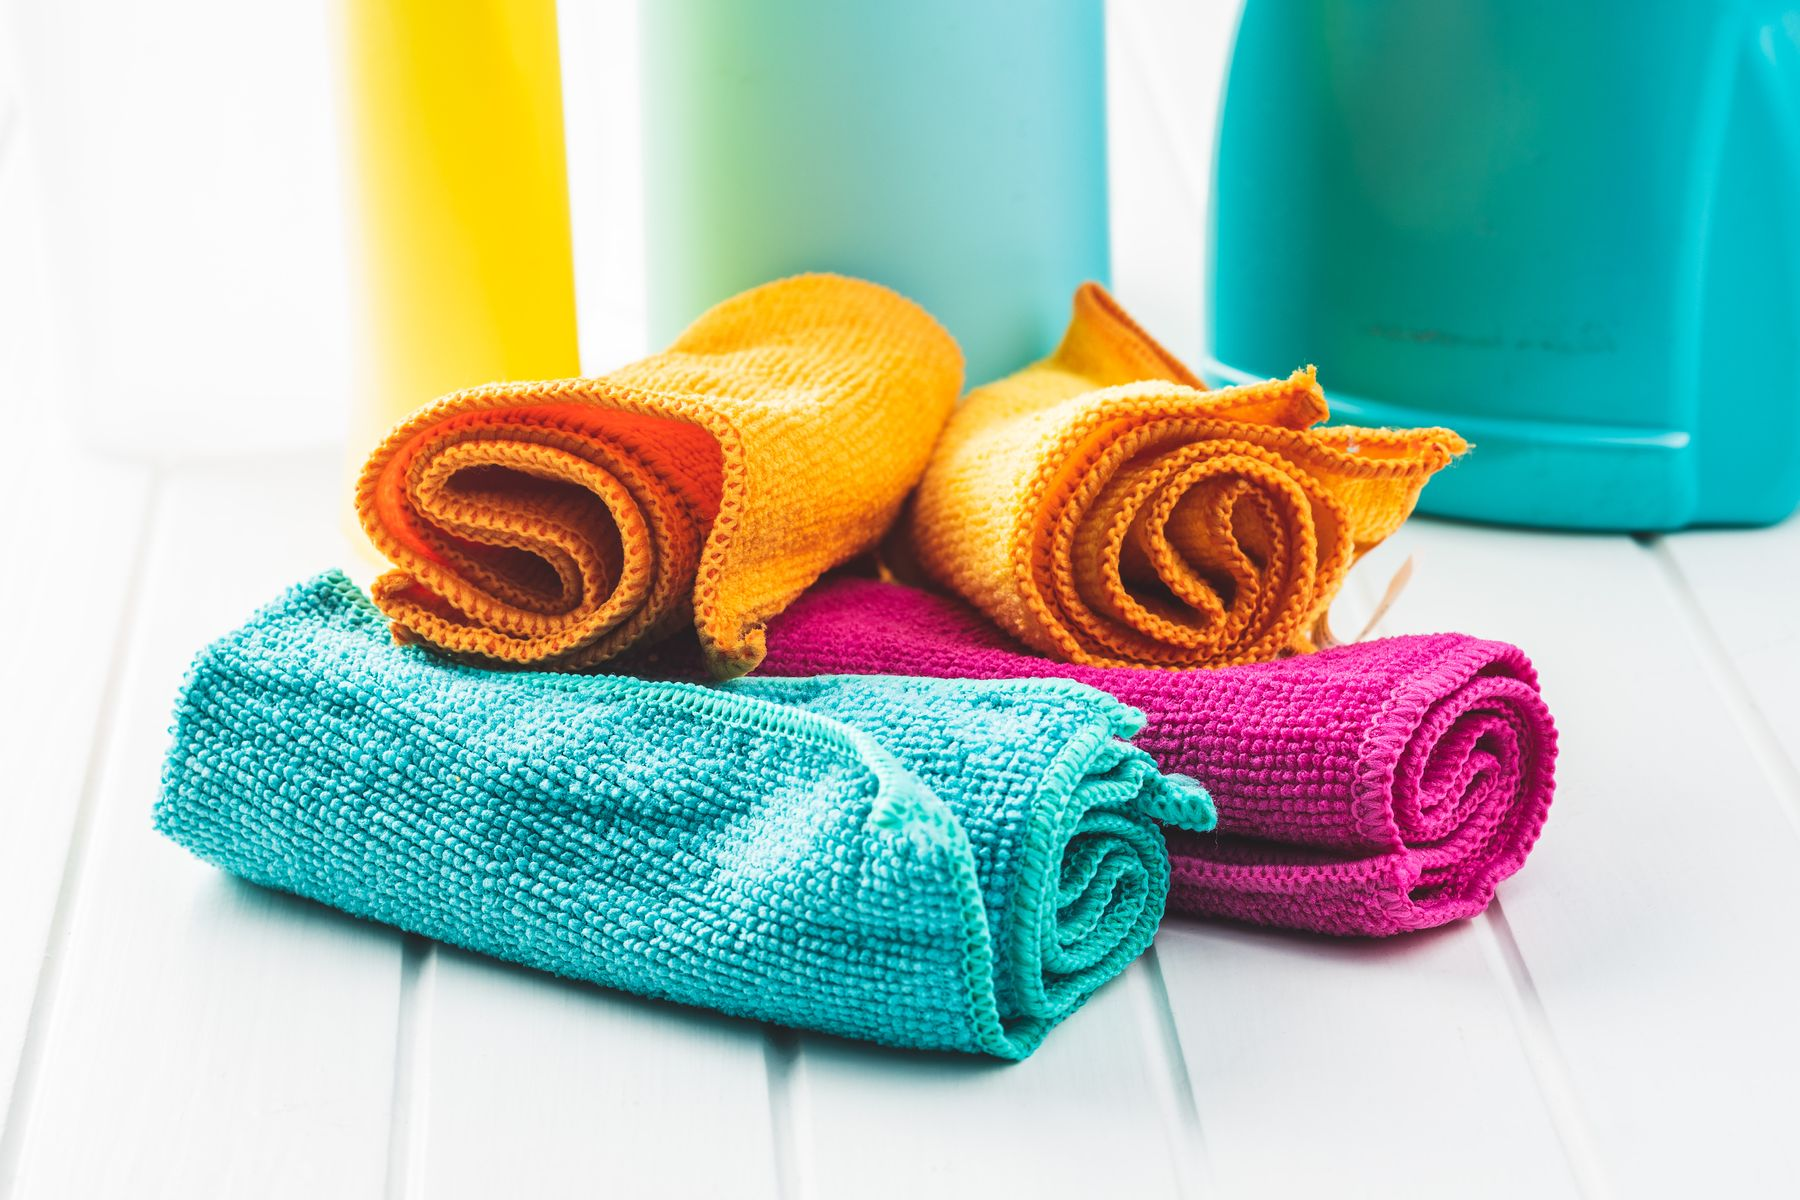 multiple colourful cleaning clothes rolled up on a white surface